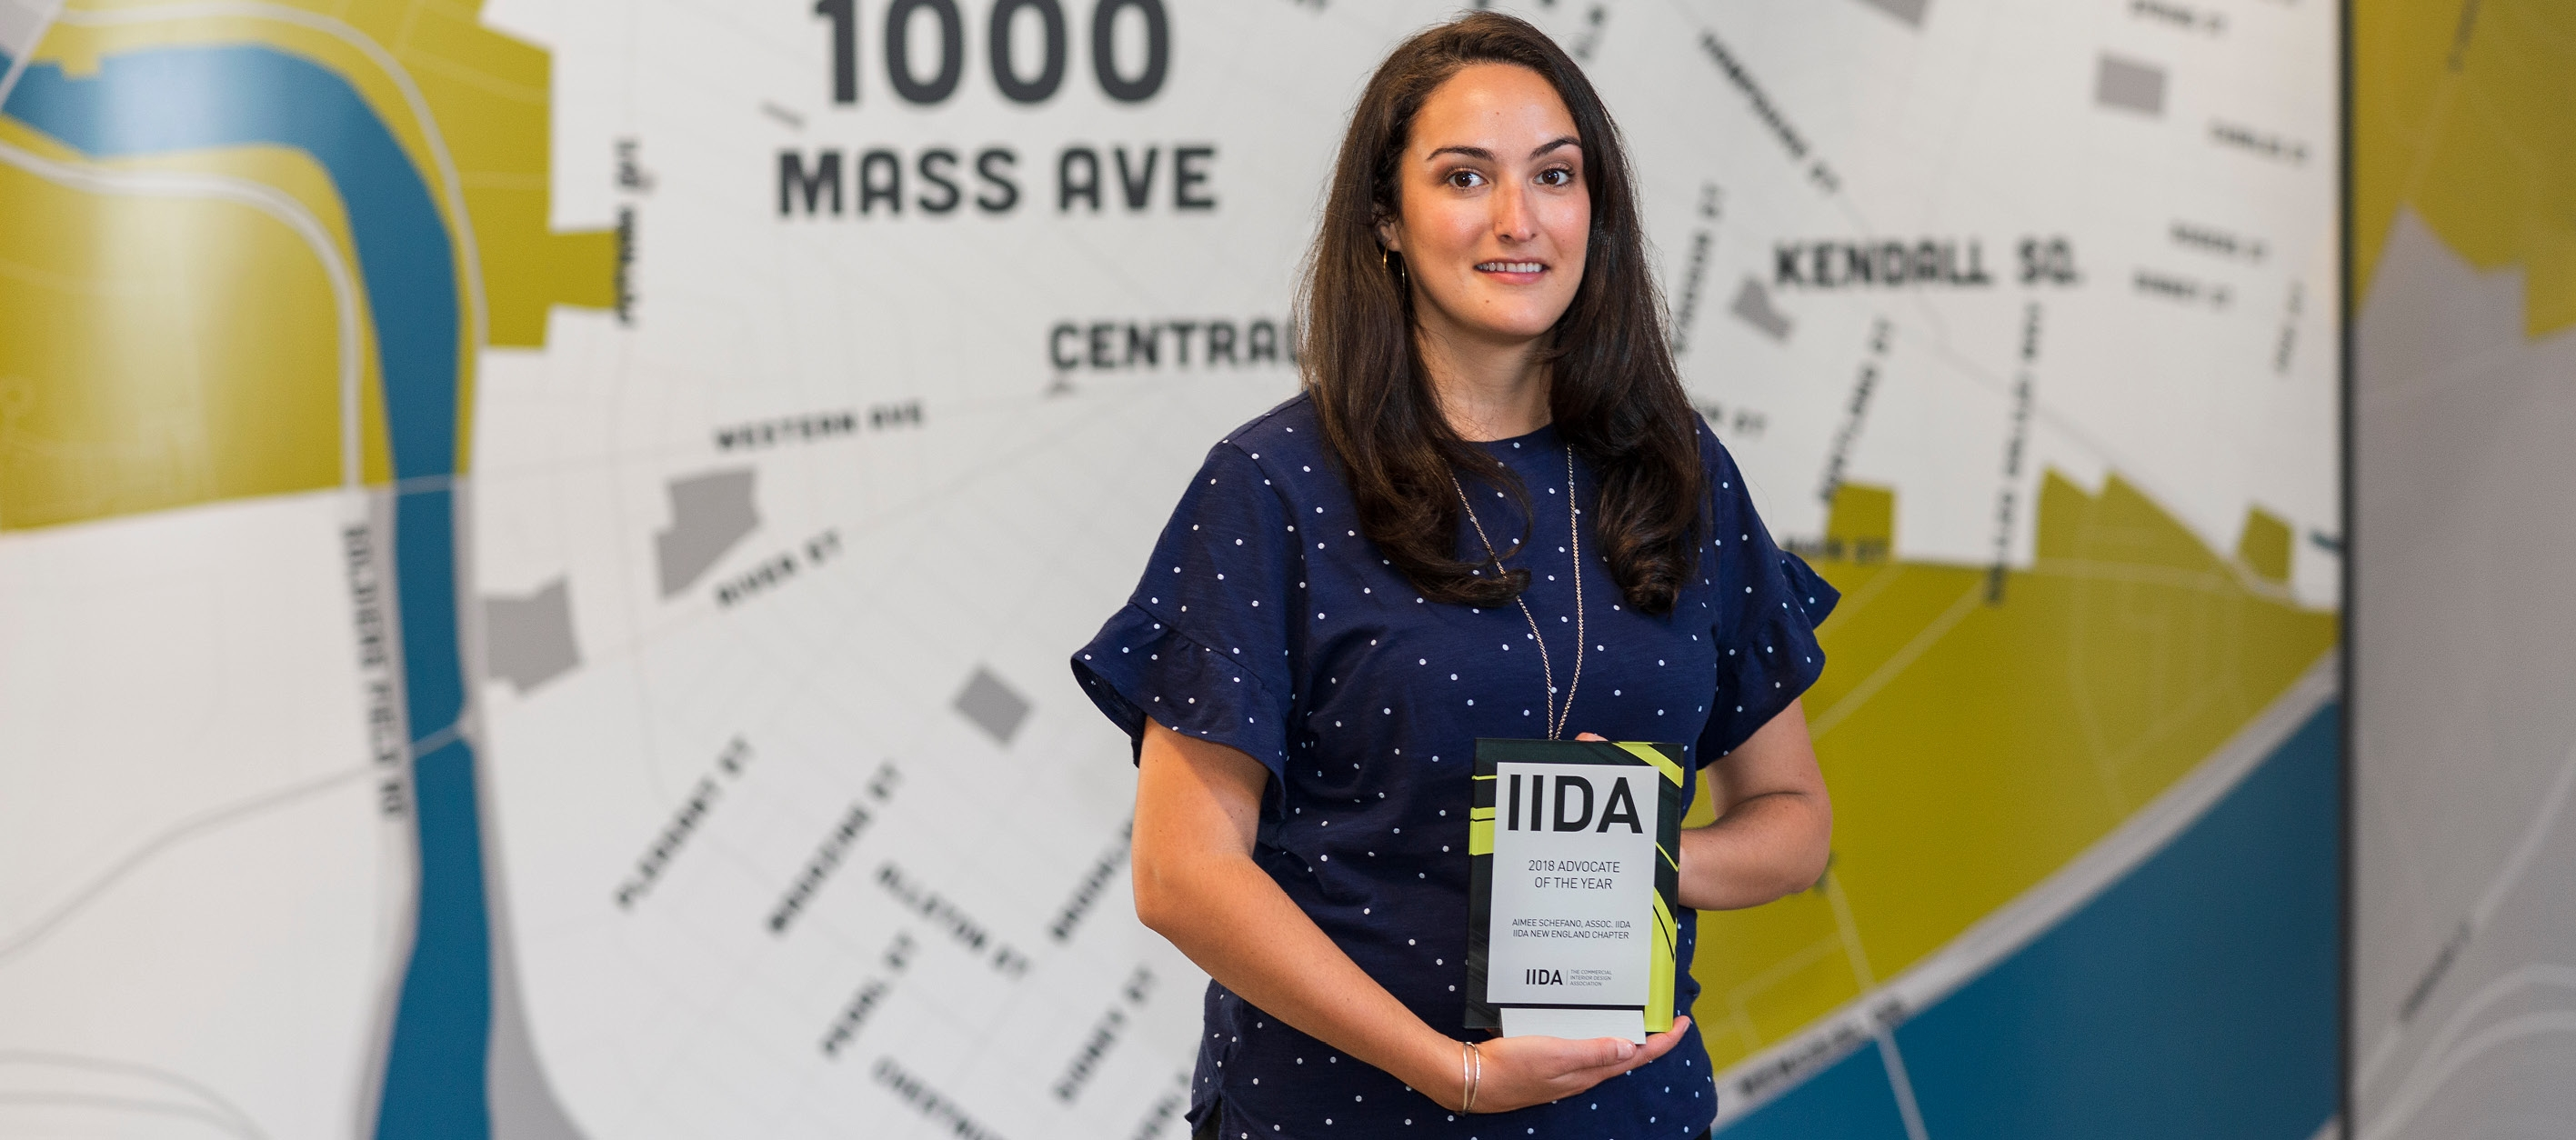 Aimee Schefano named IIDA's 2018 Advocate of the Year